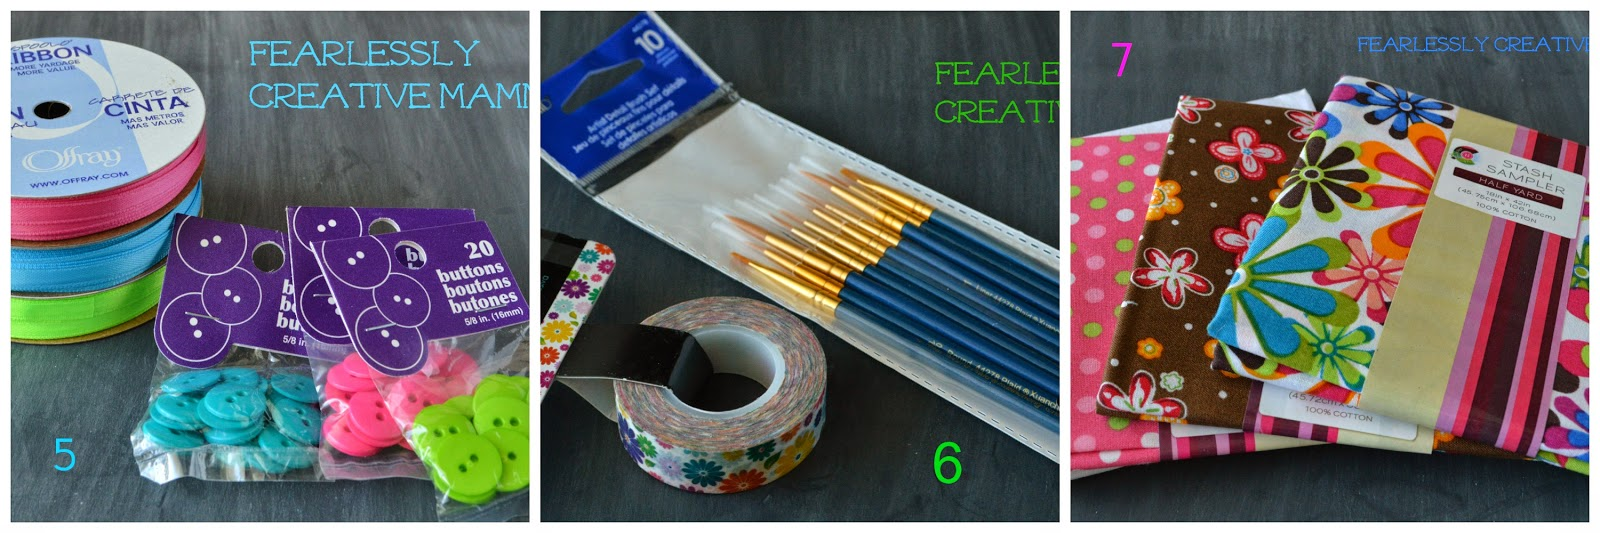 Favorite Things Giveaway Fearlessly Creative Mammas